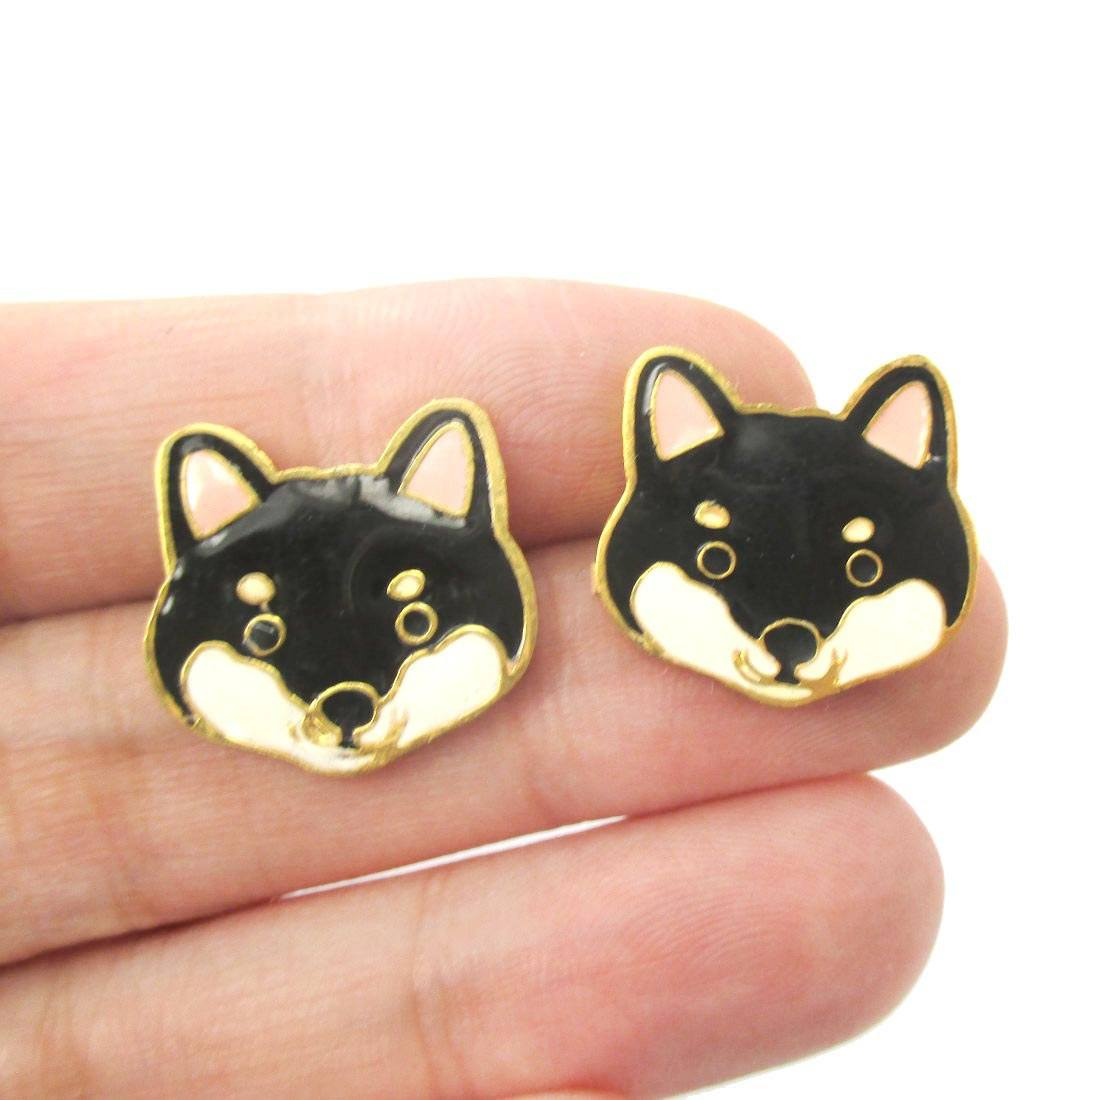 Adorable Shiba Inu Puppy Face Shaped Animal Stud Earrings in Black